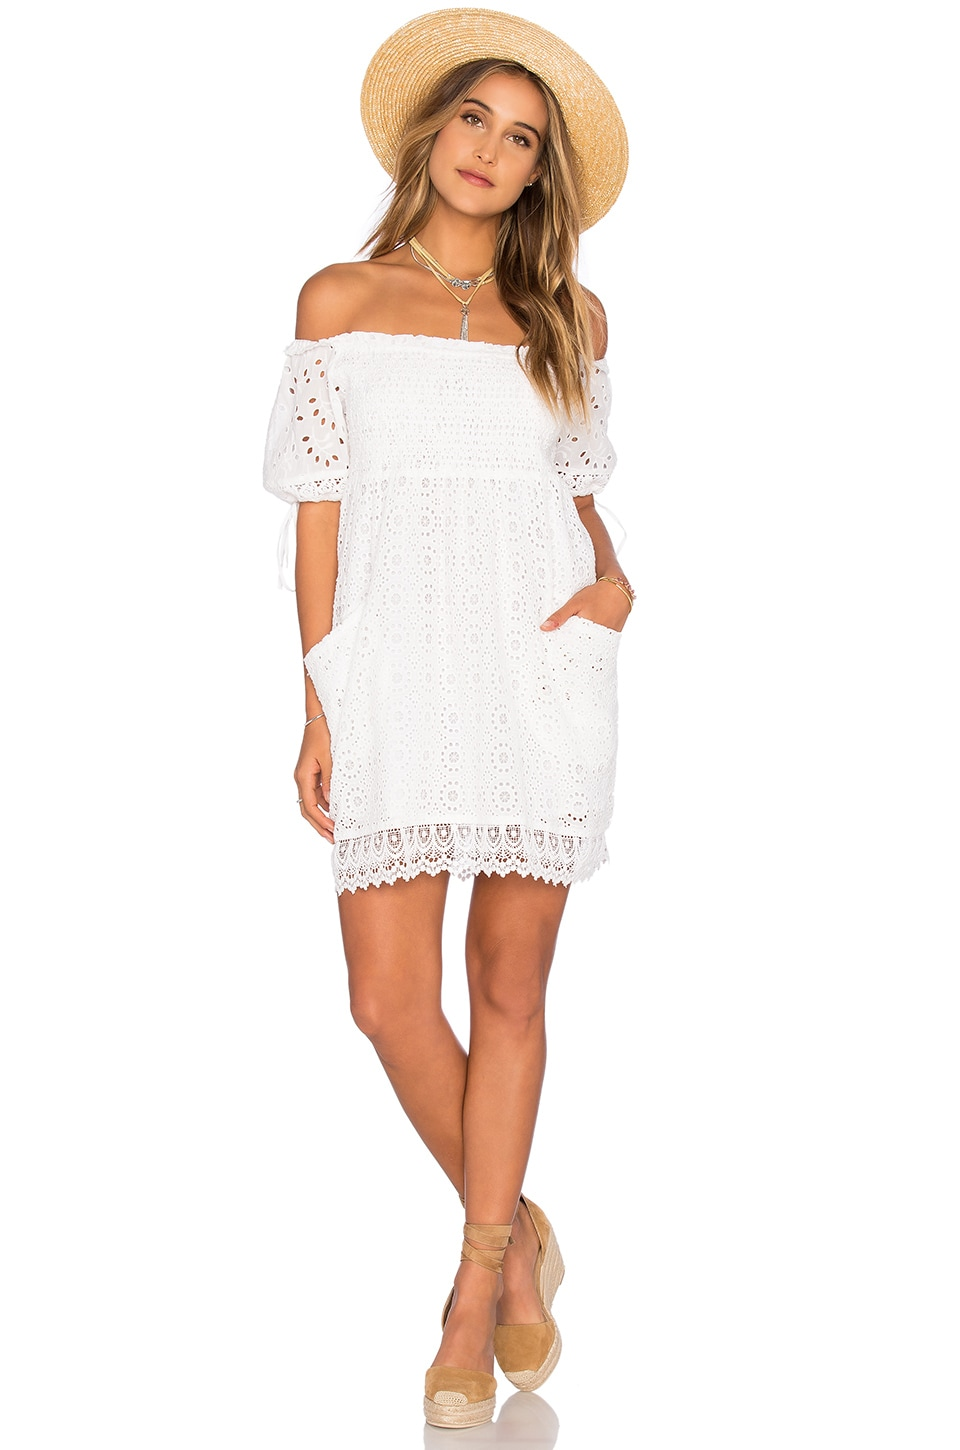 Tularosa Quinn Smocked Dress in Milk